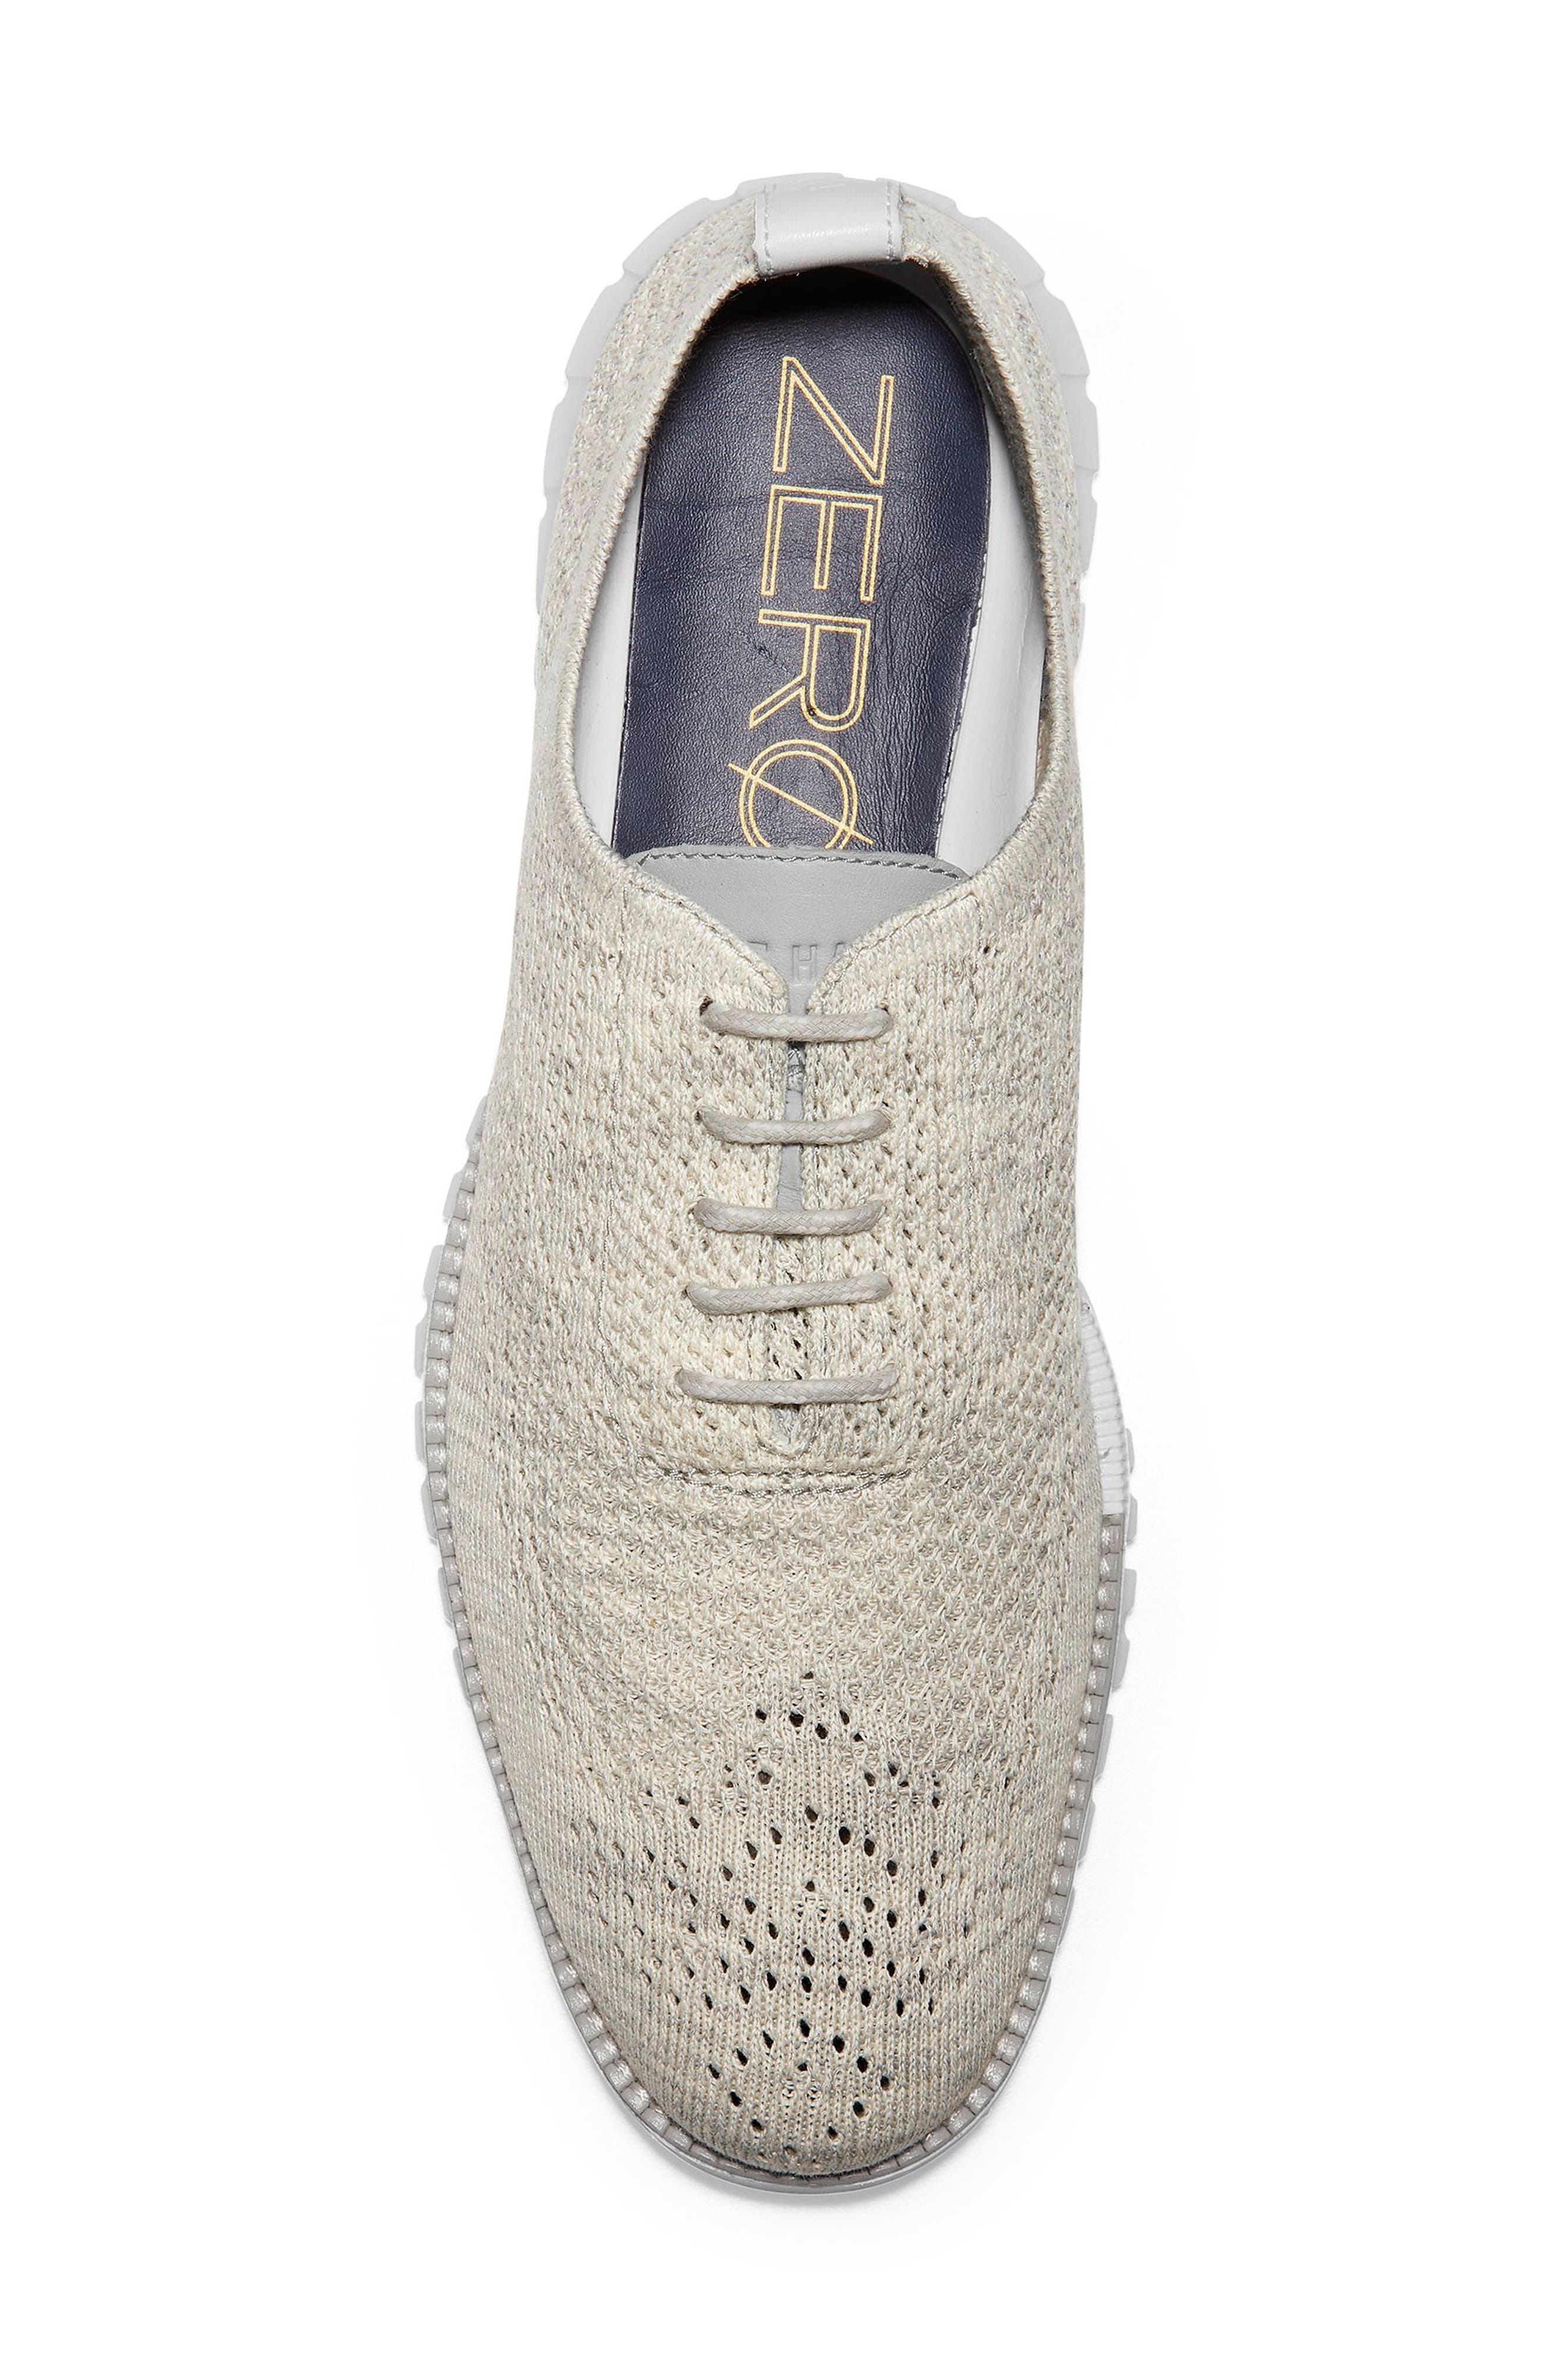 ZeroGrand Stitchlite Woven Wool Wingtip,                             Alternate thumbnail 5, color,                             HARBOR MIST KNIT